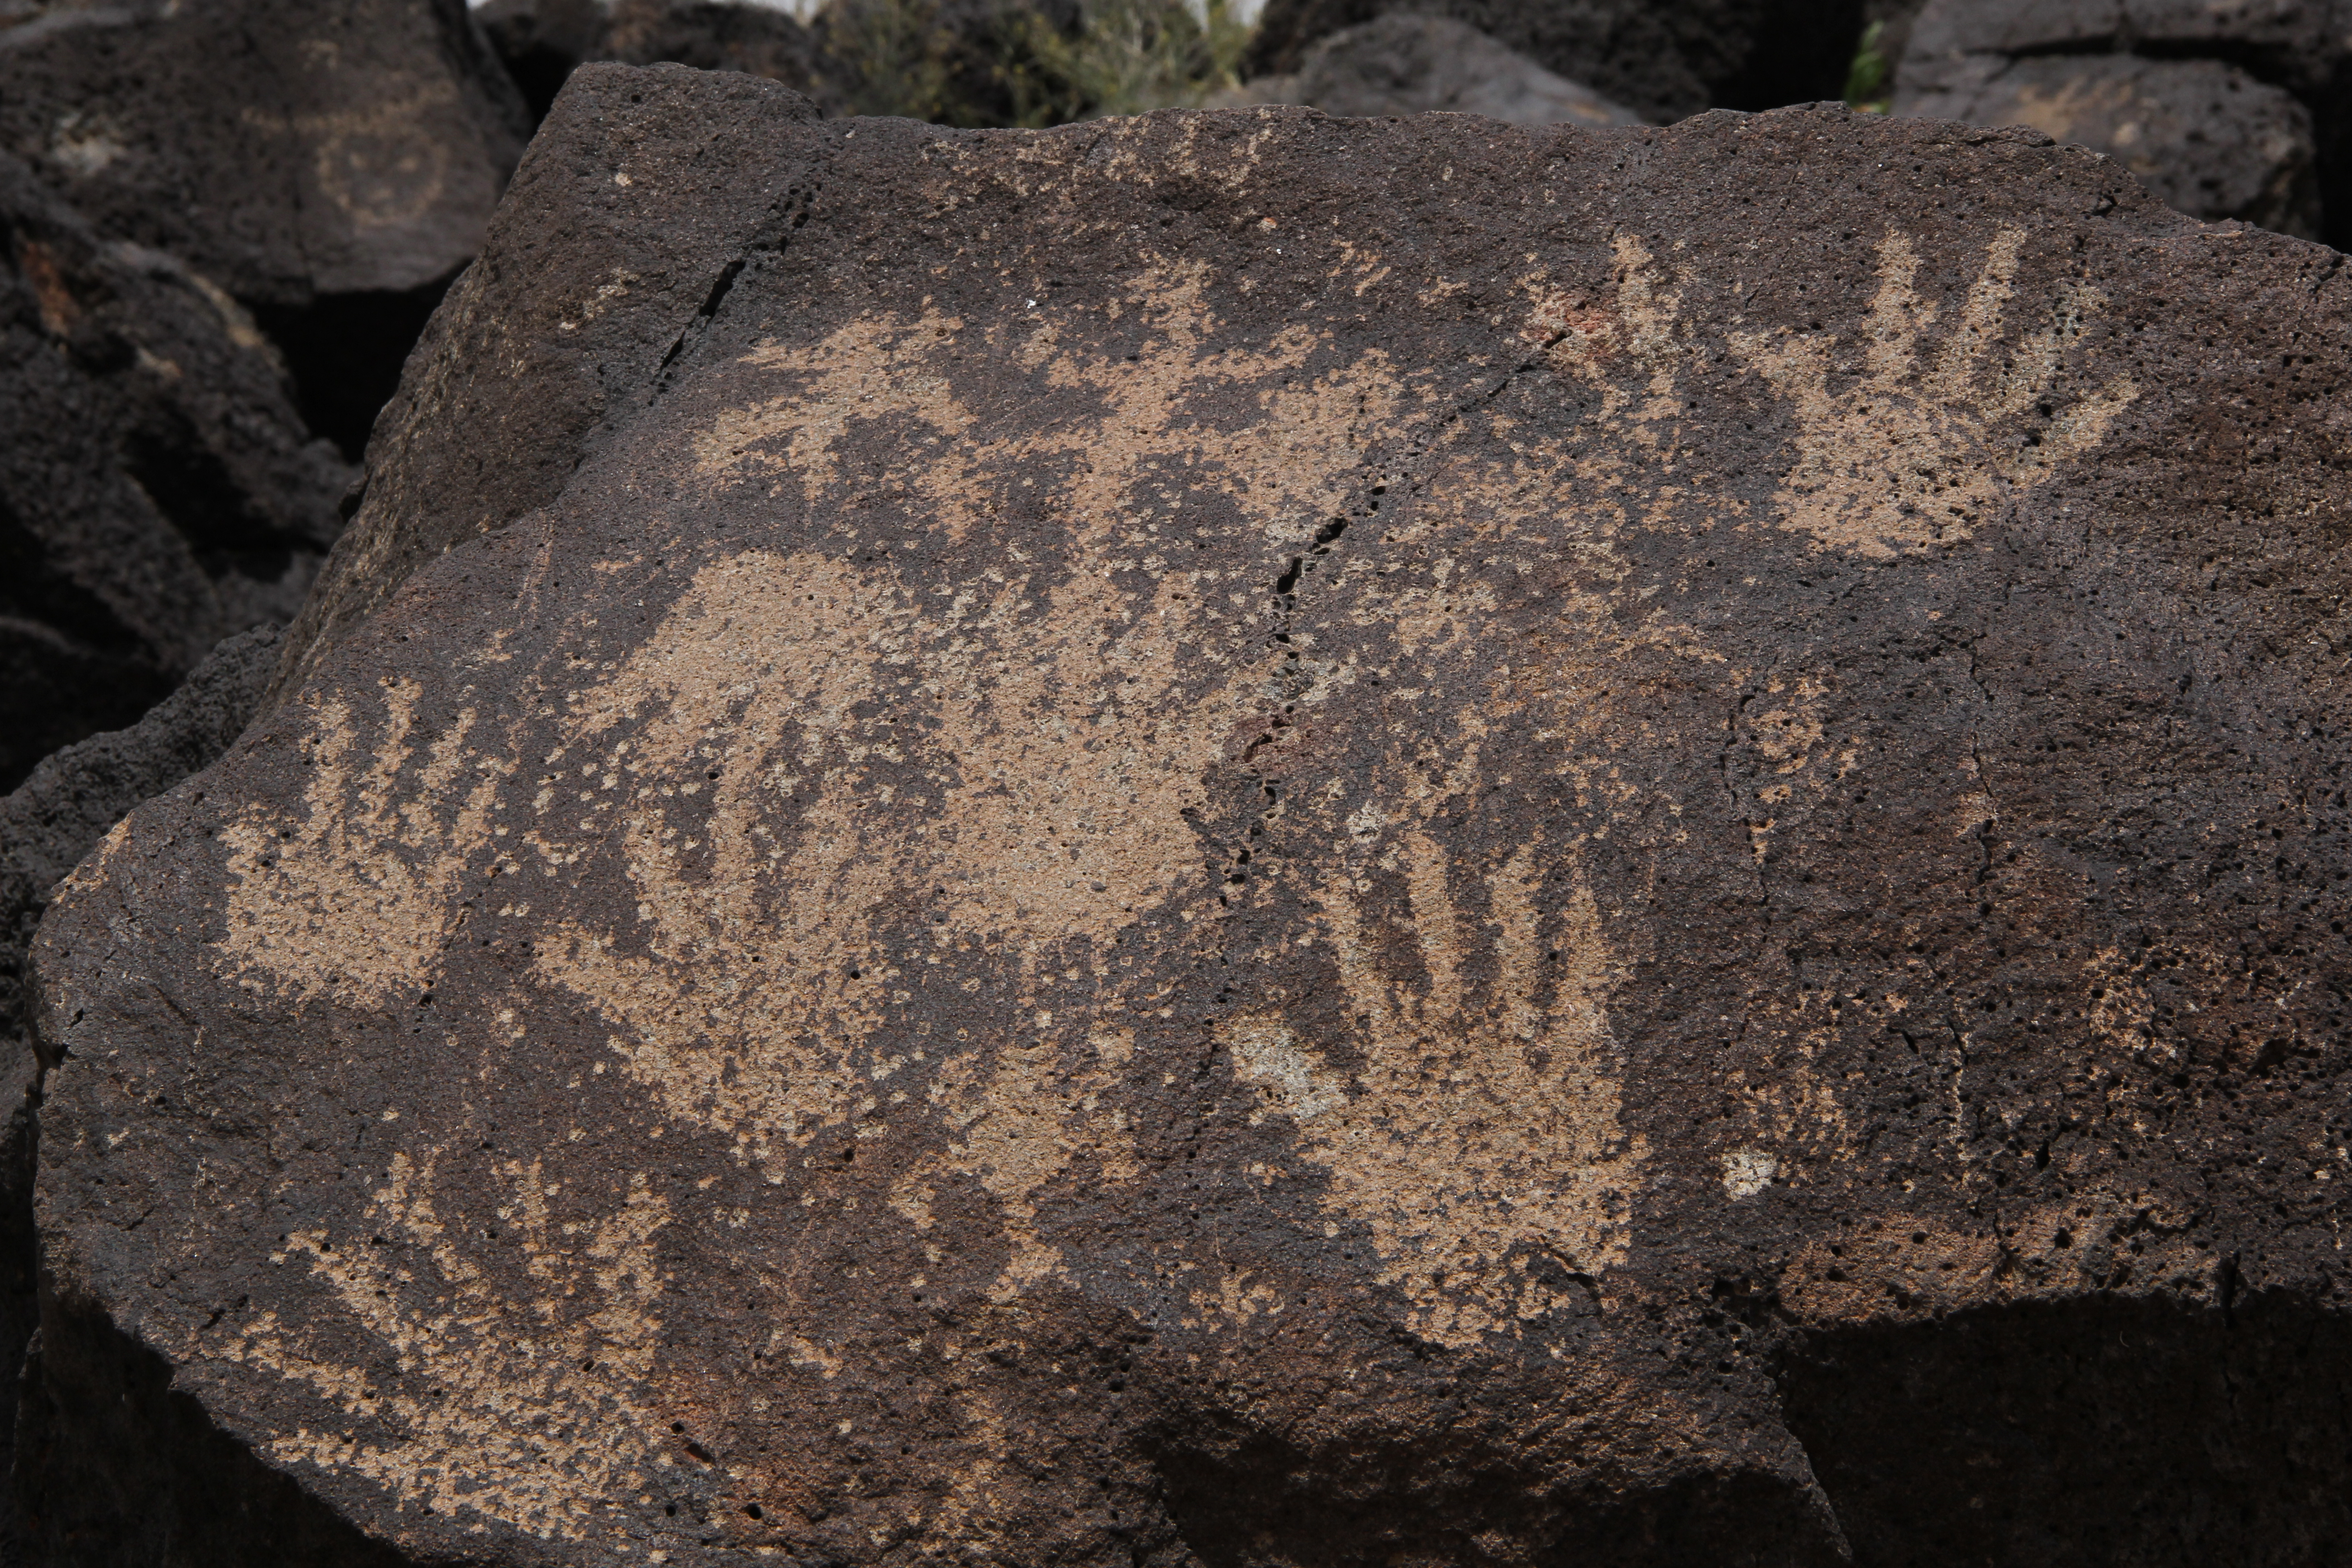 Image of human hand petroglyphs carved on dark volcanic rock at Petroglyph National Monument, New Mexico.